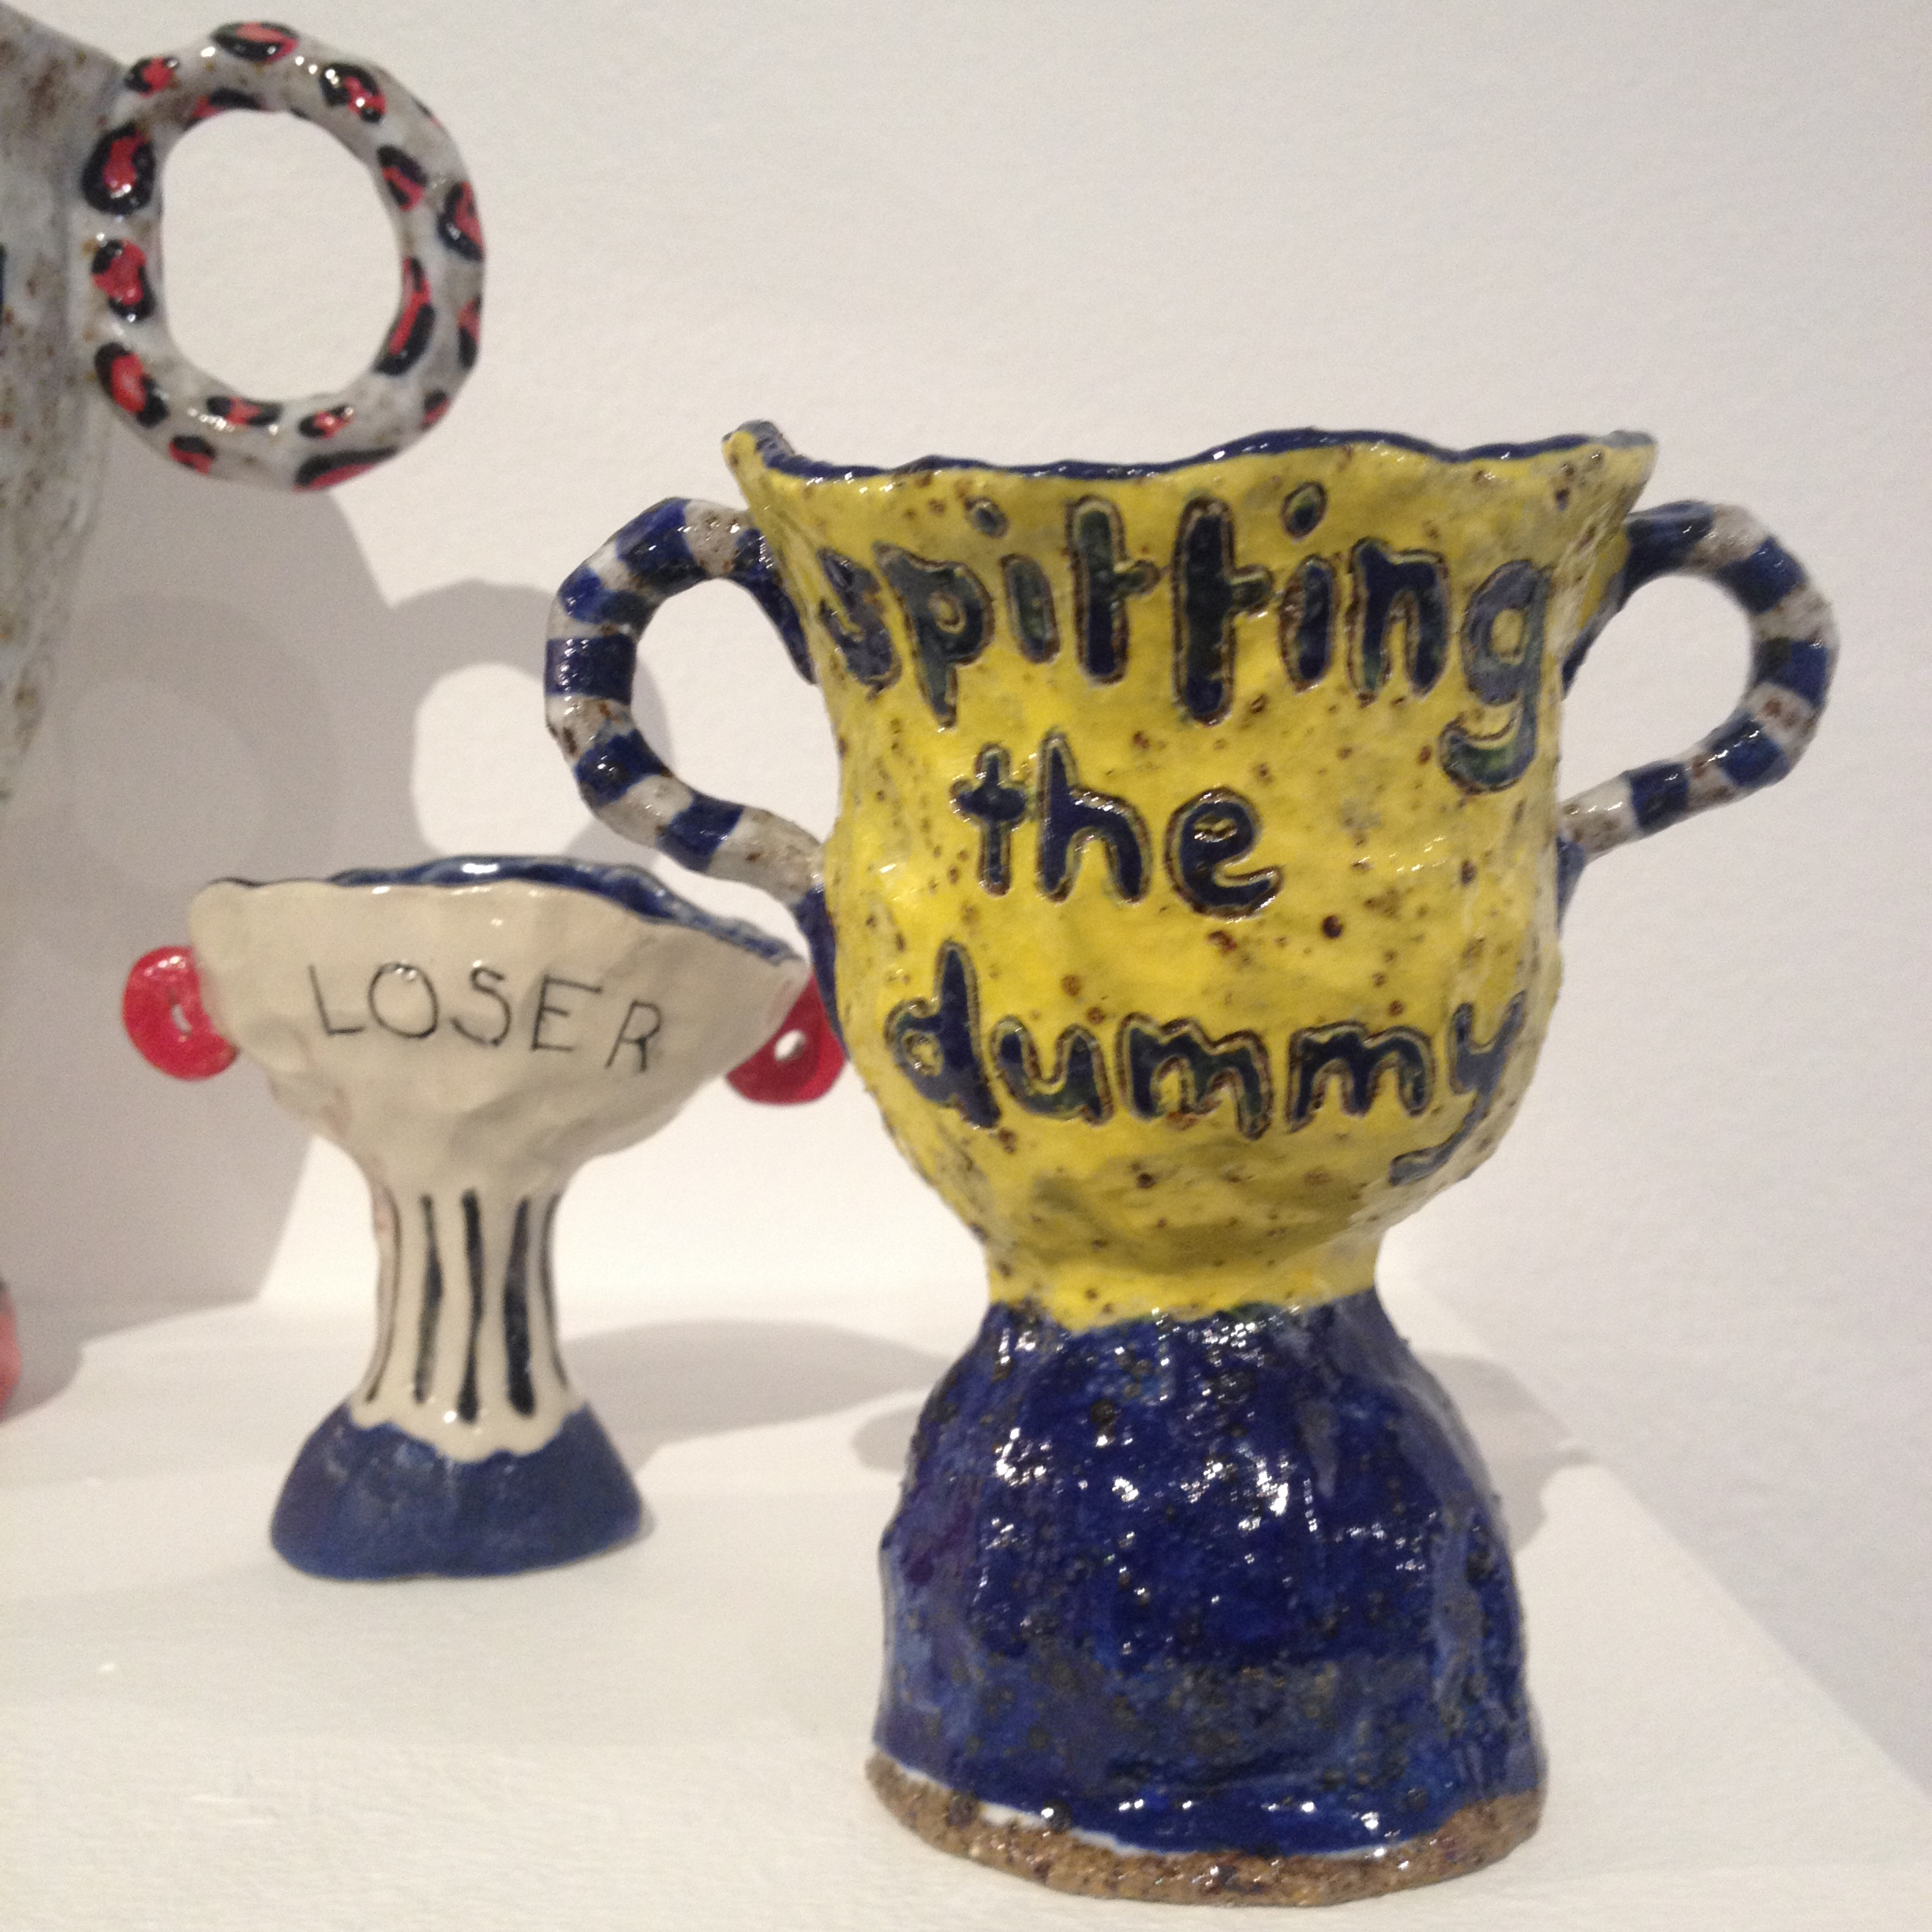 trophy, sports, achievement, australiana, cliche, sayings, sentiments, clay, ceramics